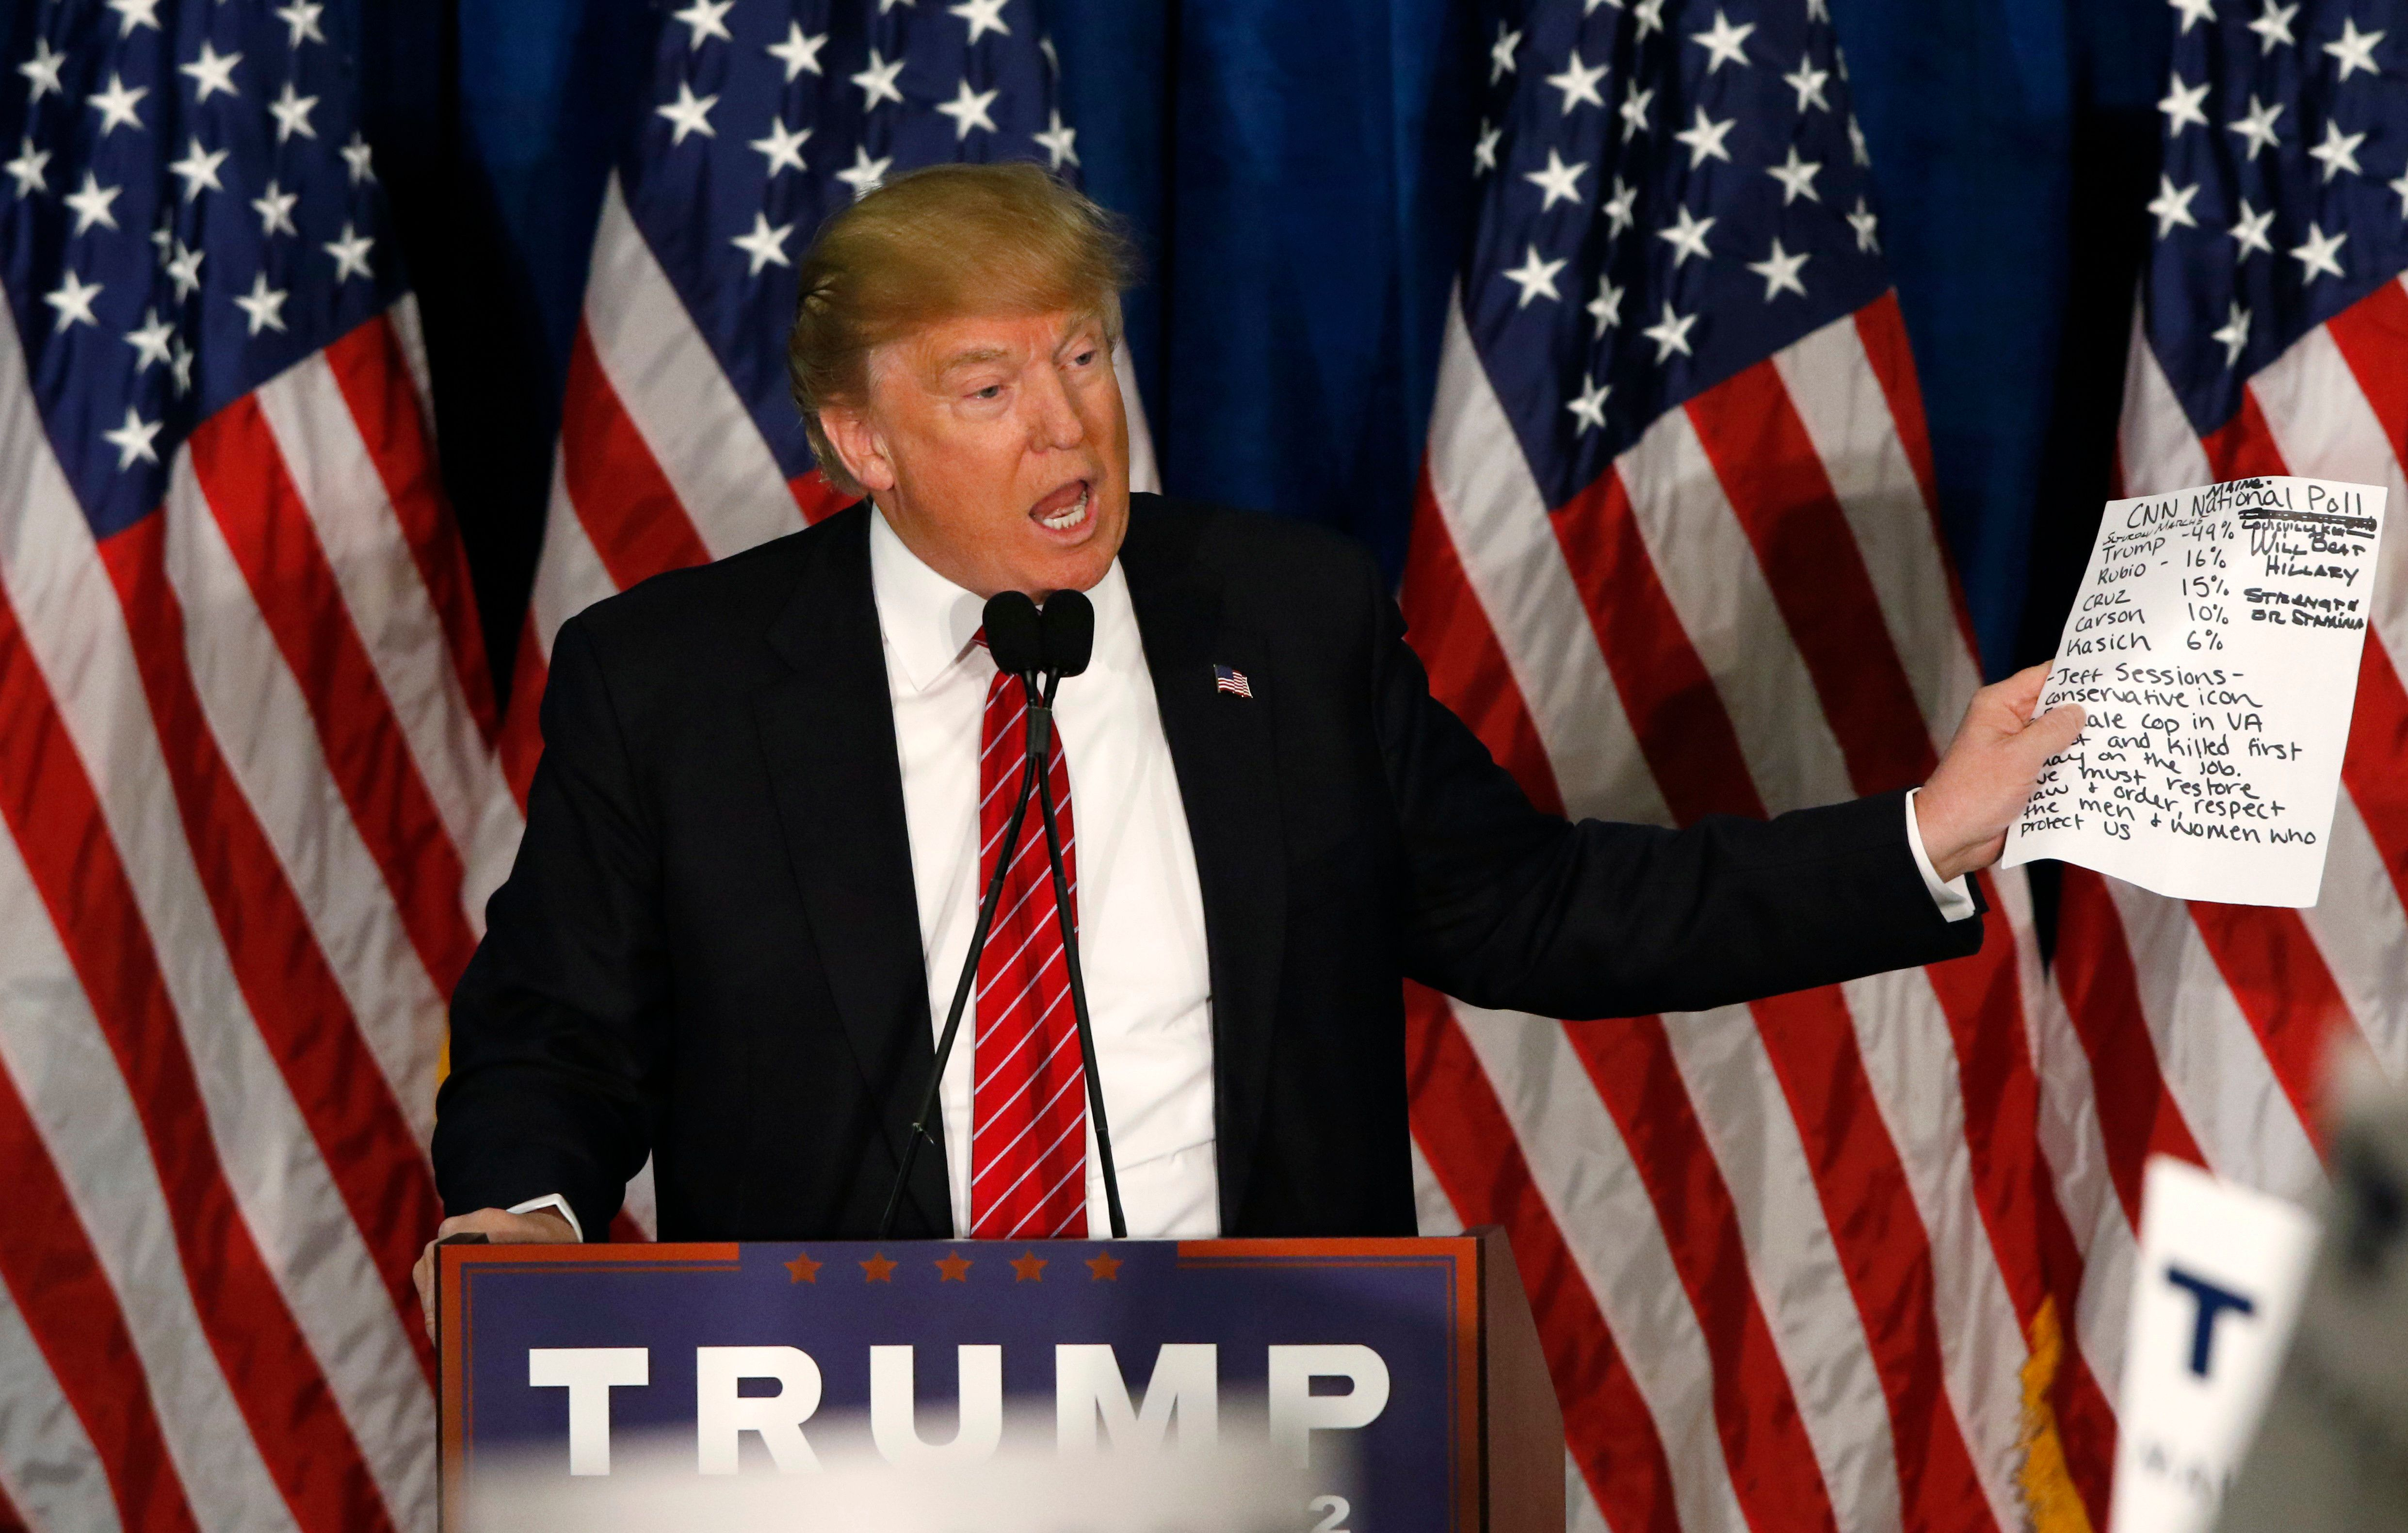 Donald Trump holds up a CNN poll as he talks about his poll numbers at a rally in Portland, Maine.